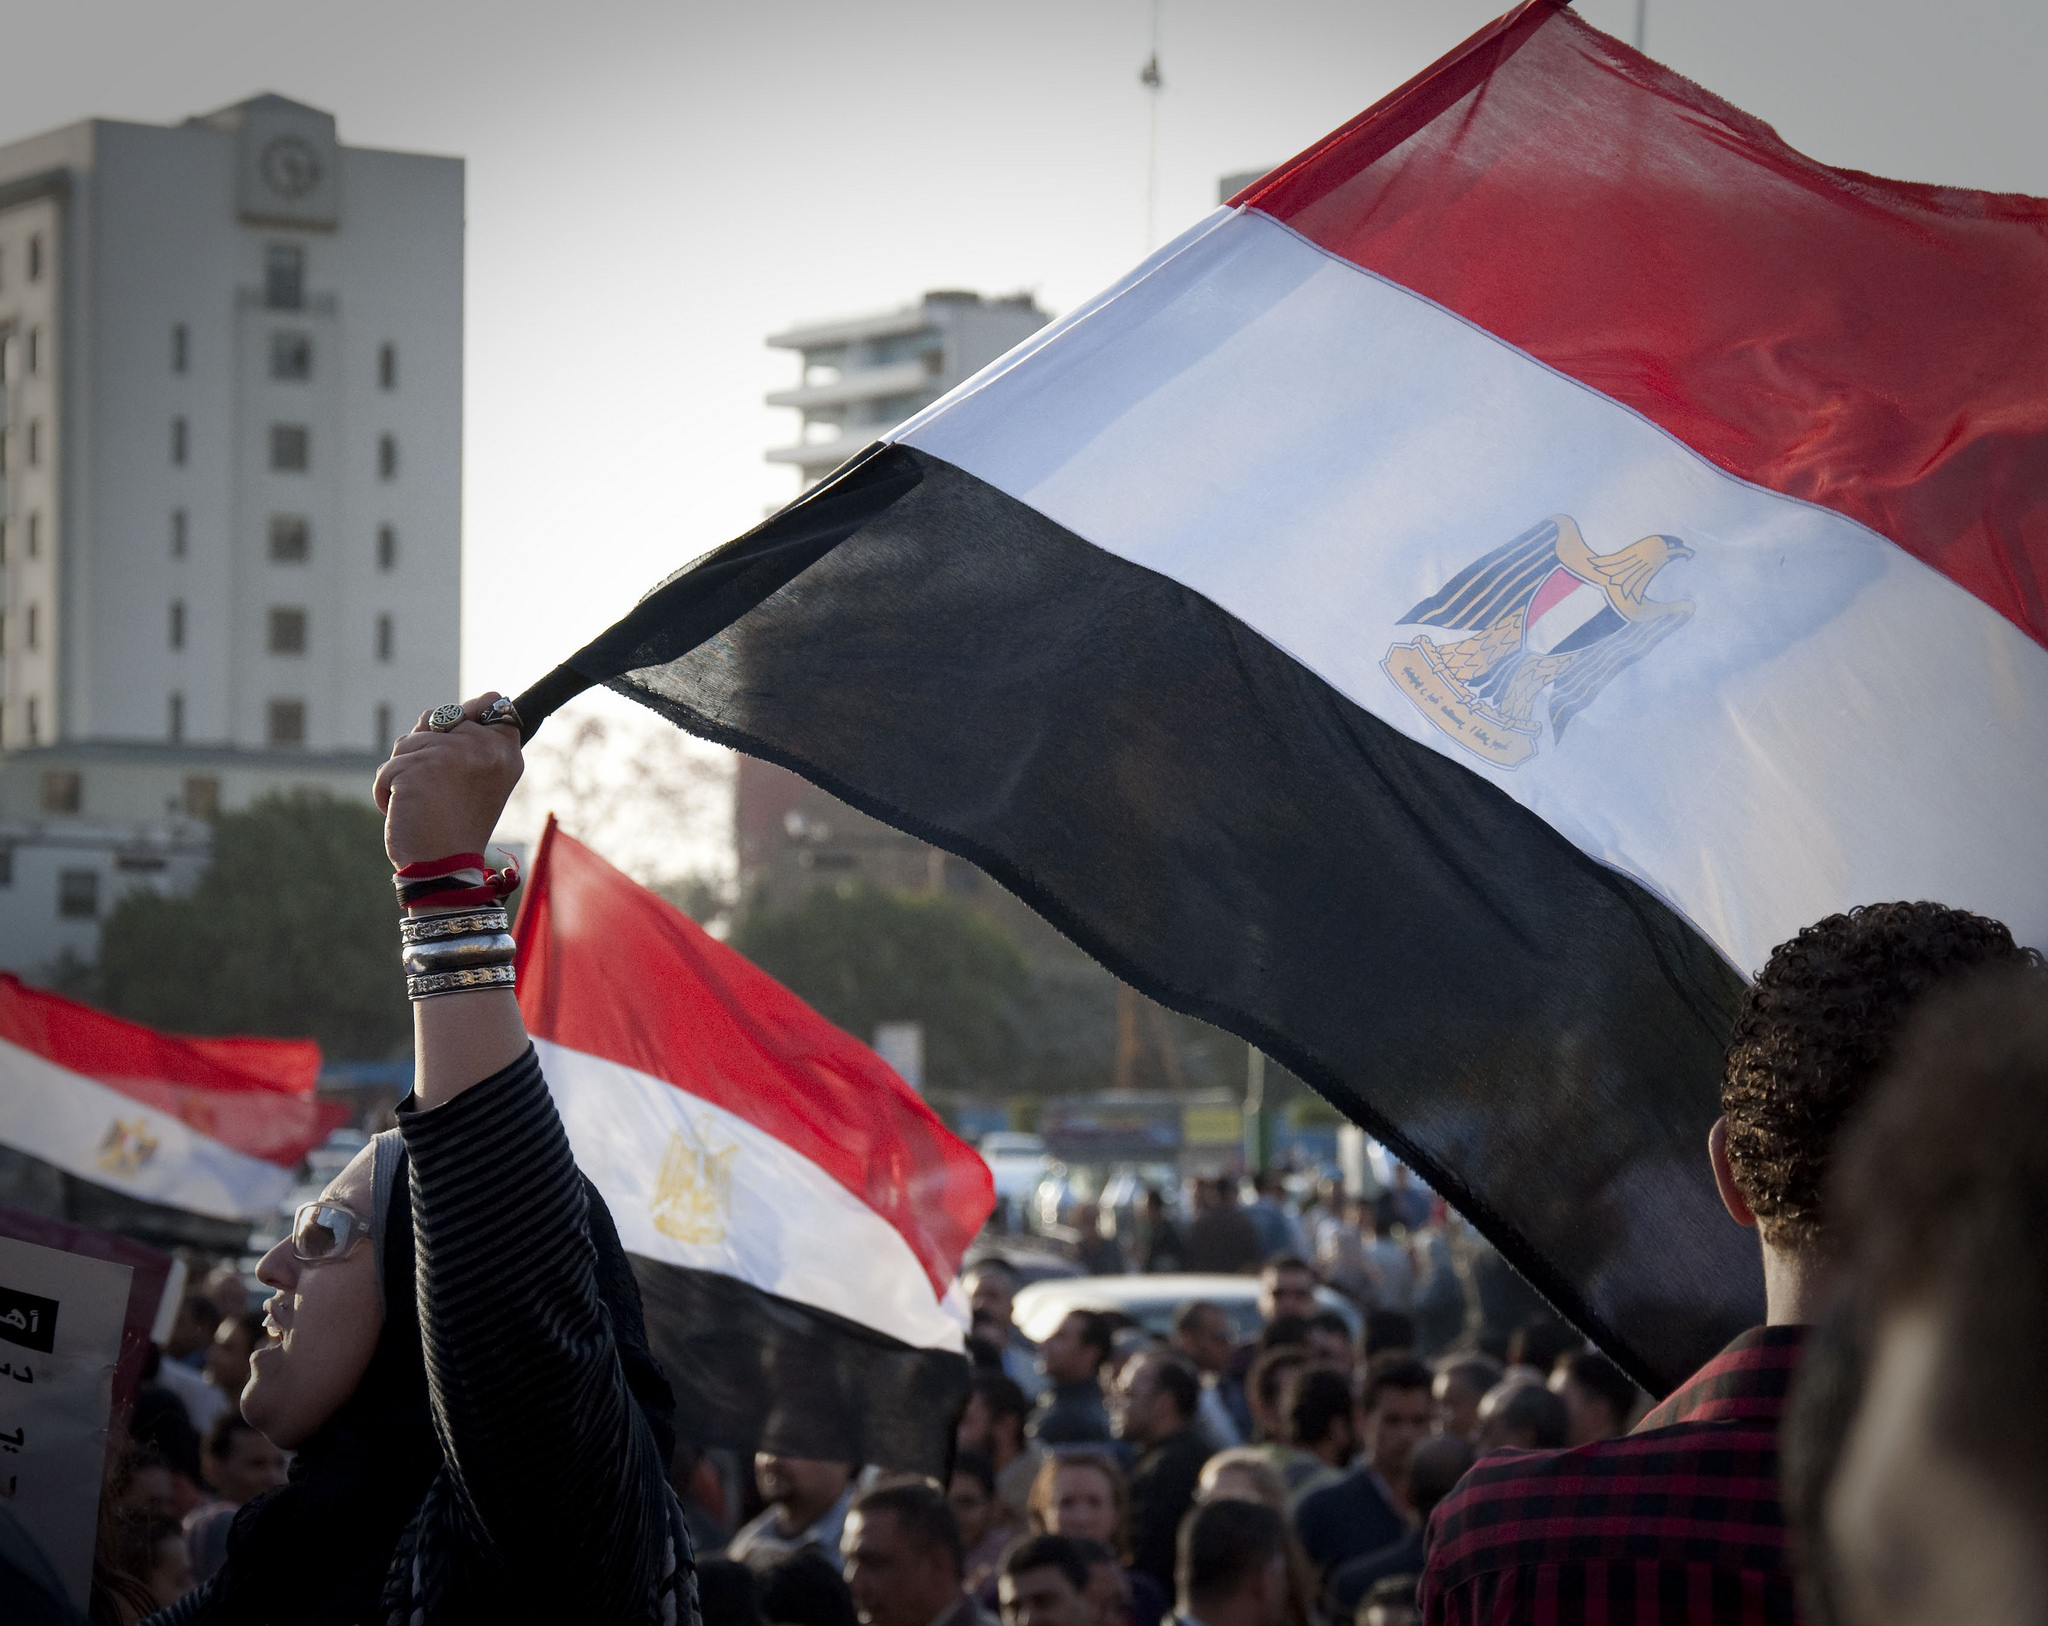 Woman protesting on Tahrir Square in Cairo, Egypt [UN Women Rights/Flickr]